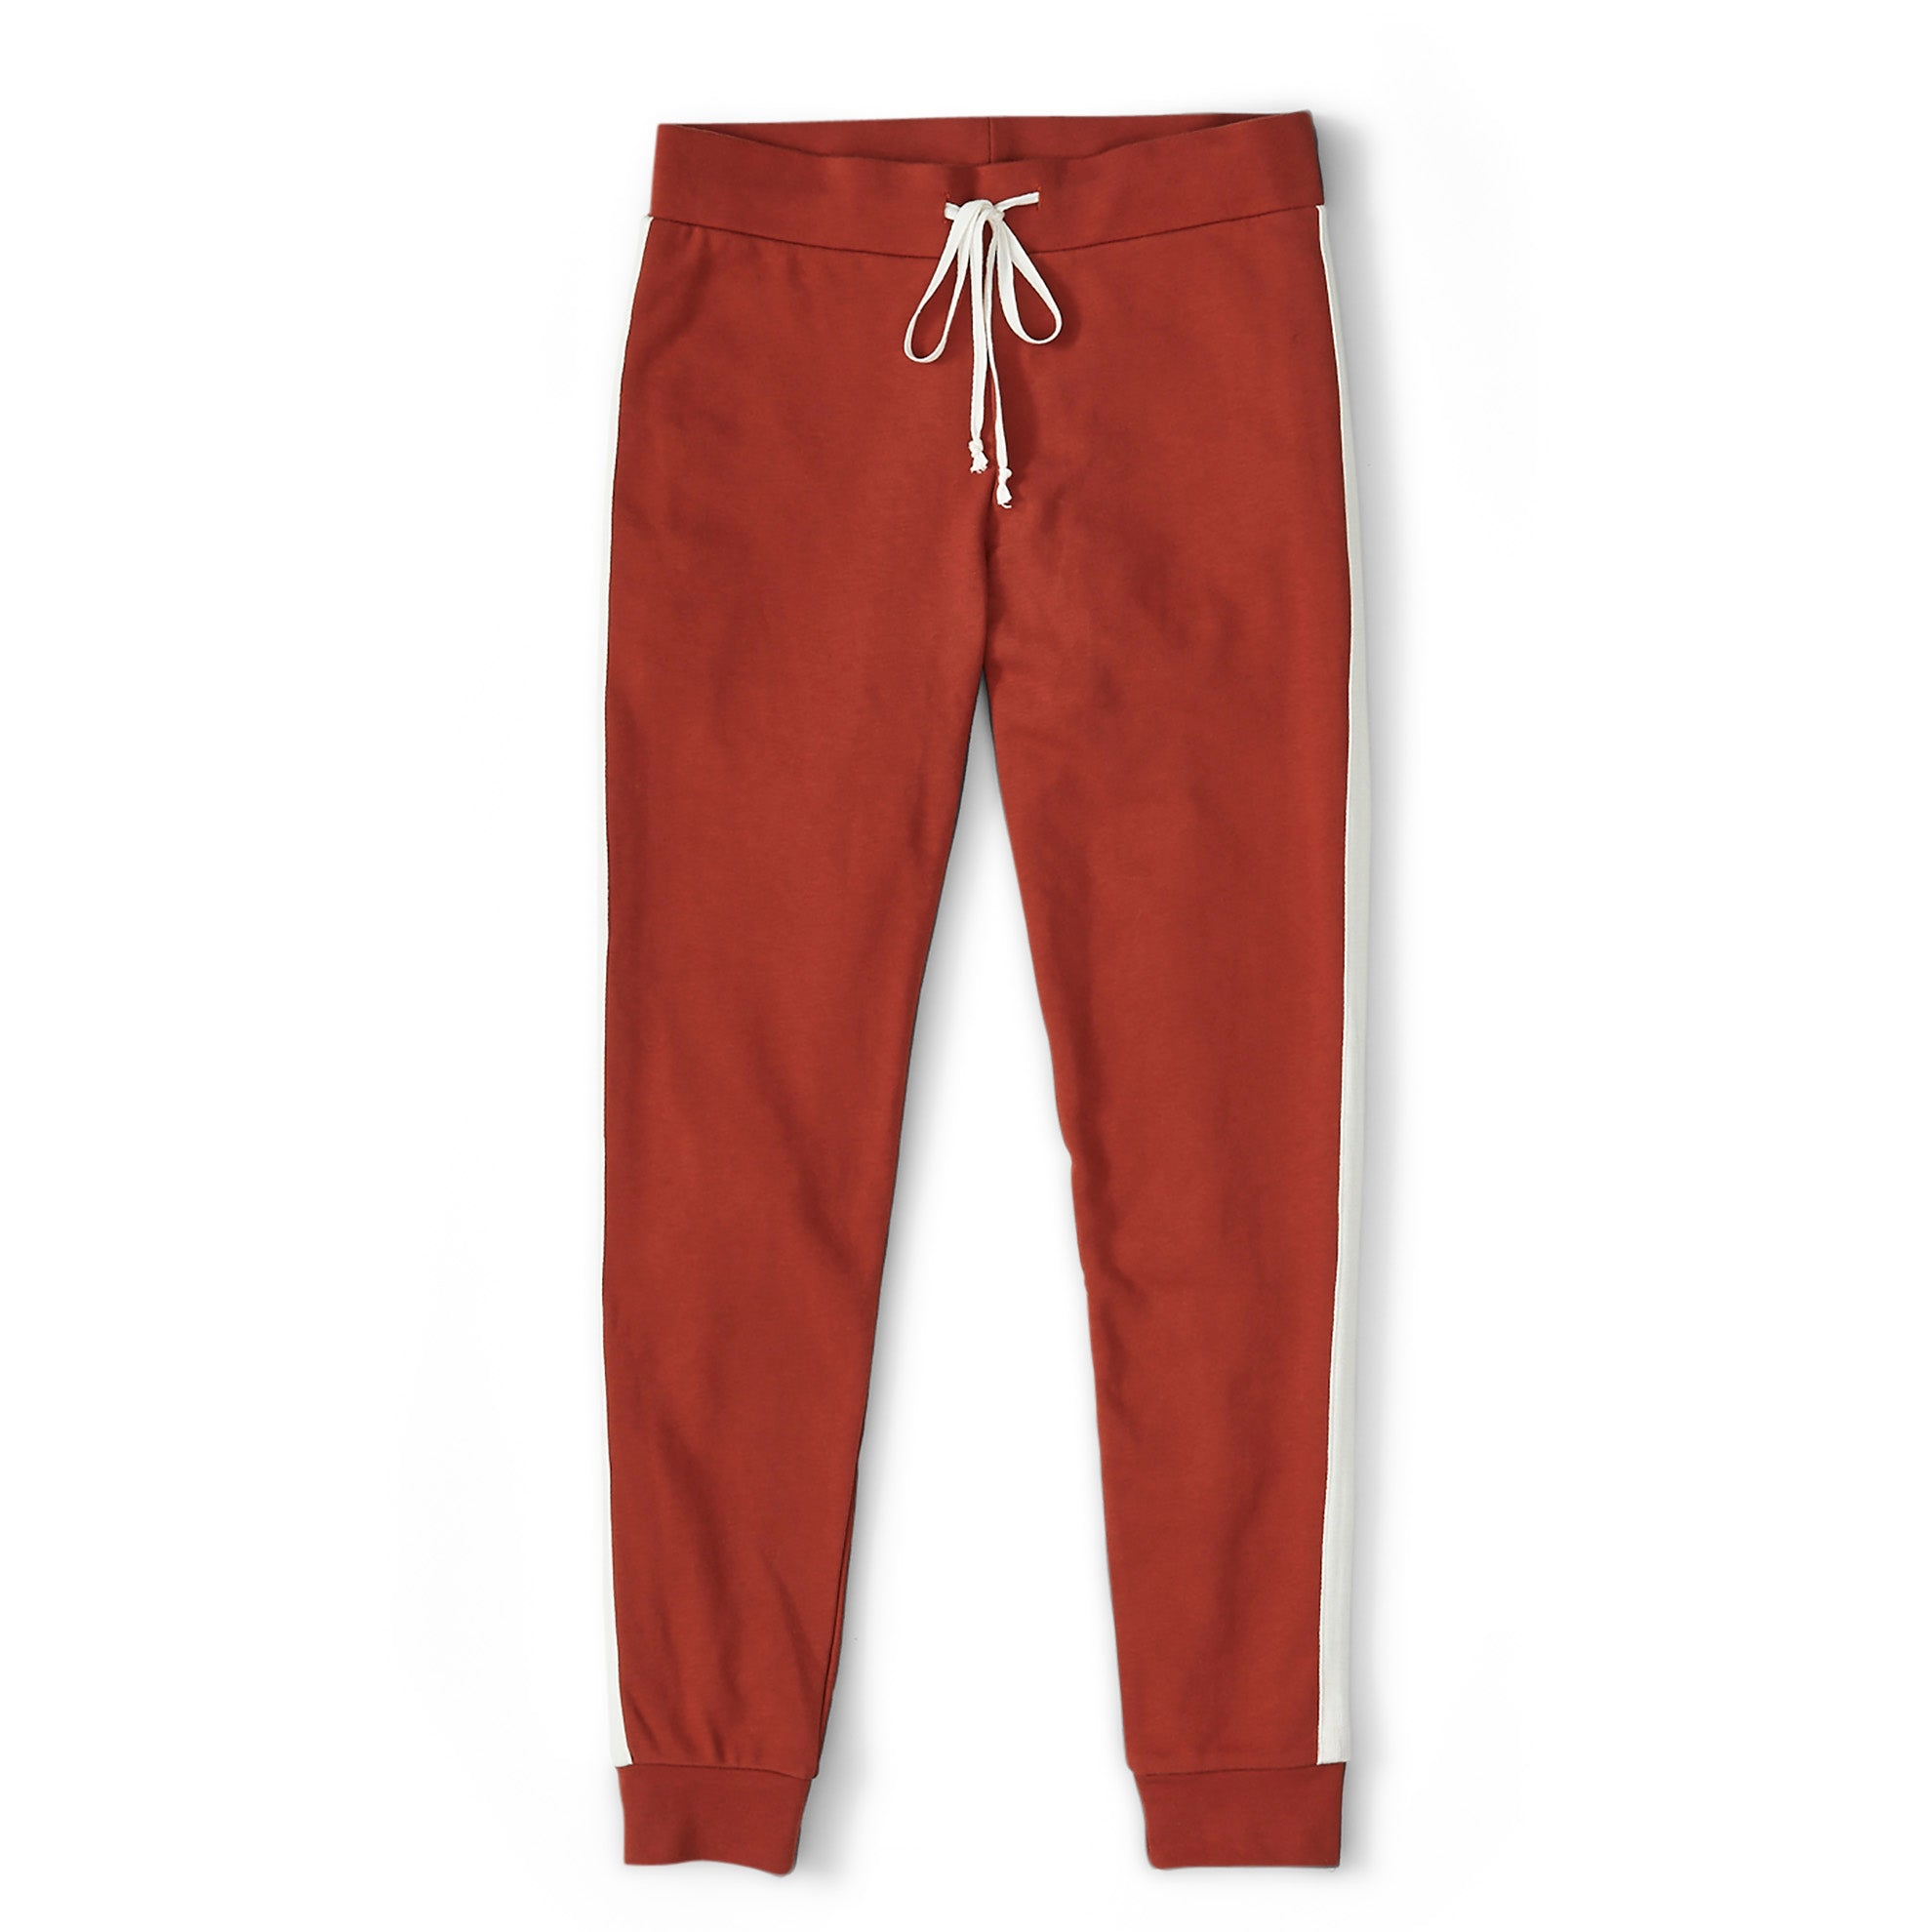 Racing Stripe Crew Pant